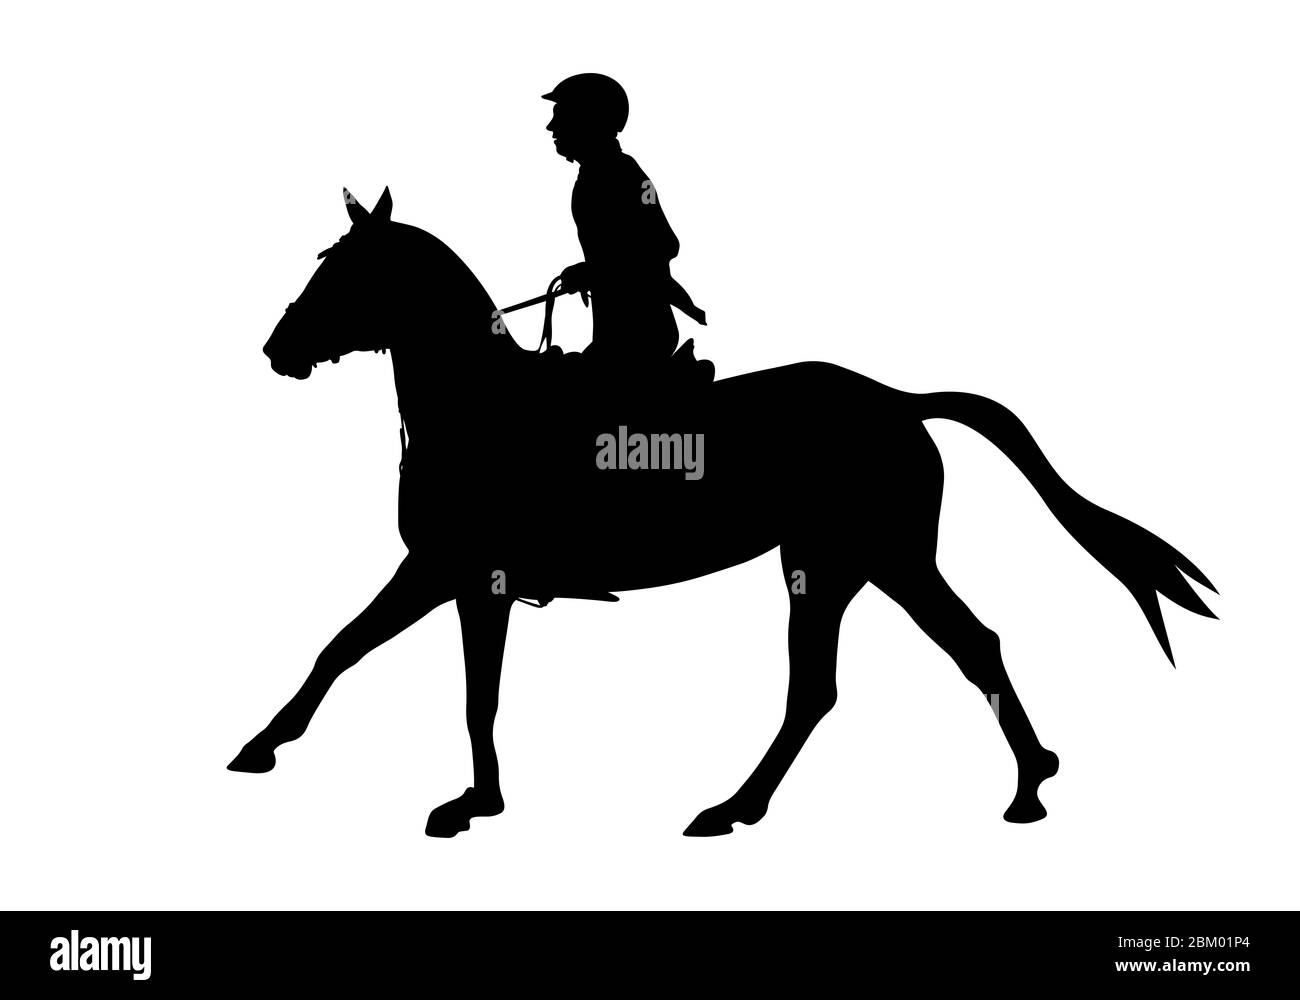 Show Jumping Dressage Woman On Horse Black Silhouette Stock Photo Alamy